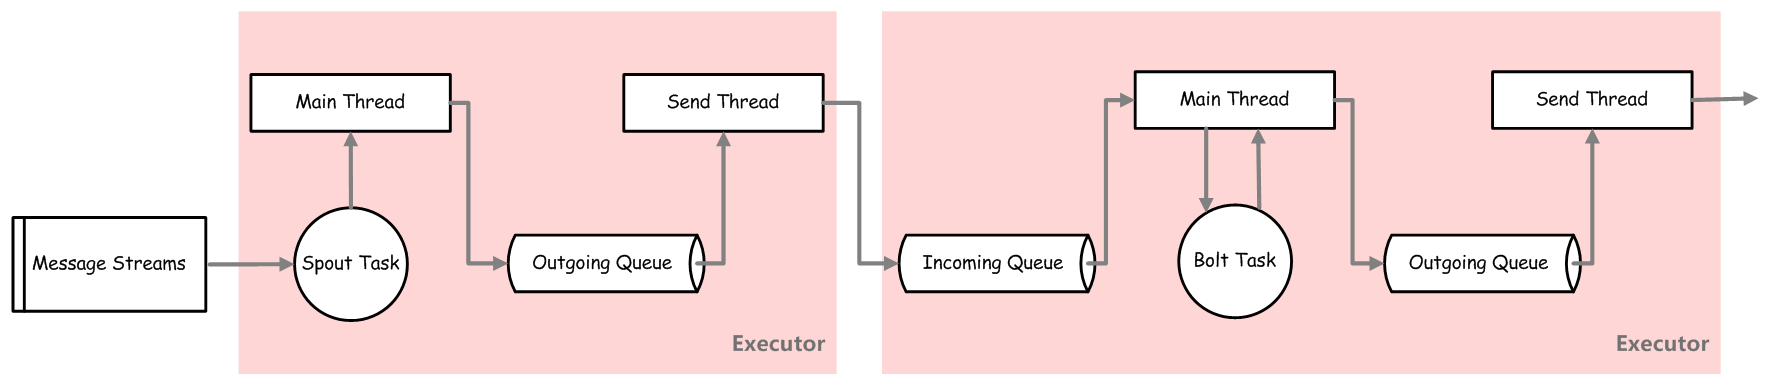 storm-transfer-tuples-between-spout-and-bolt-task-in-same-worker-different-executor